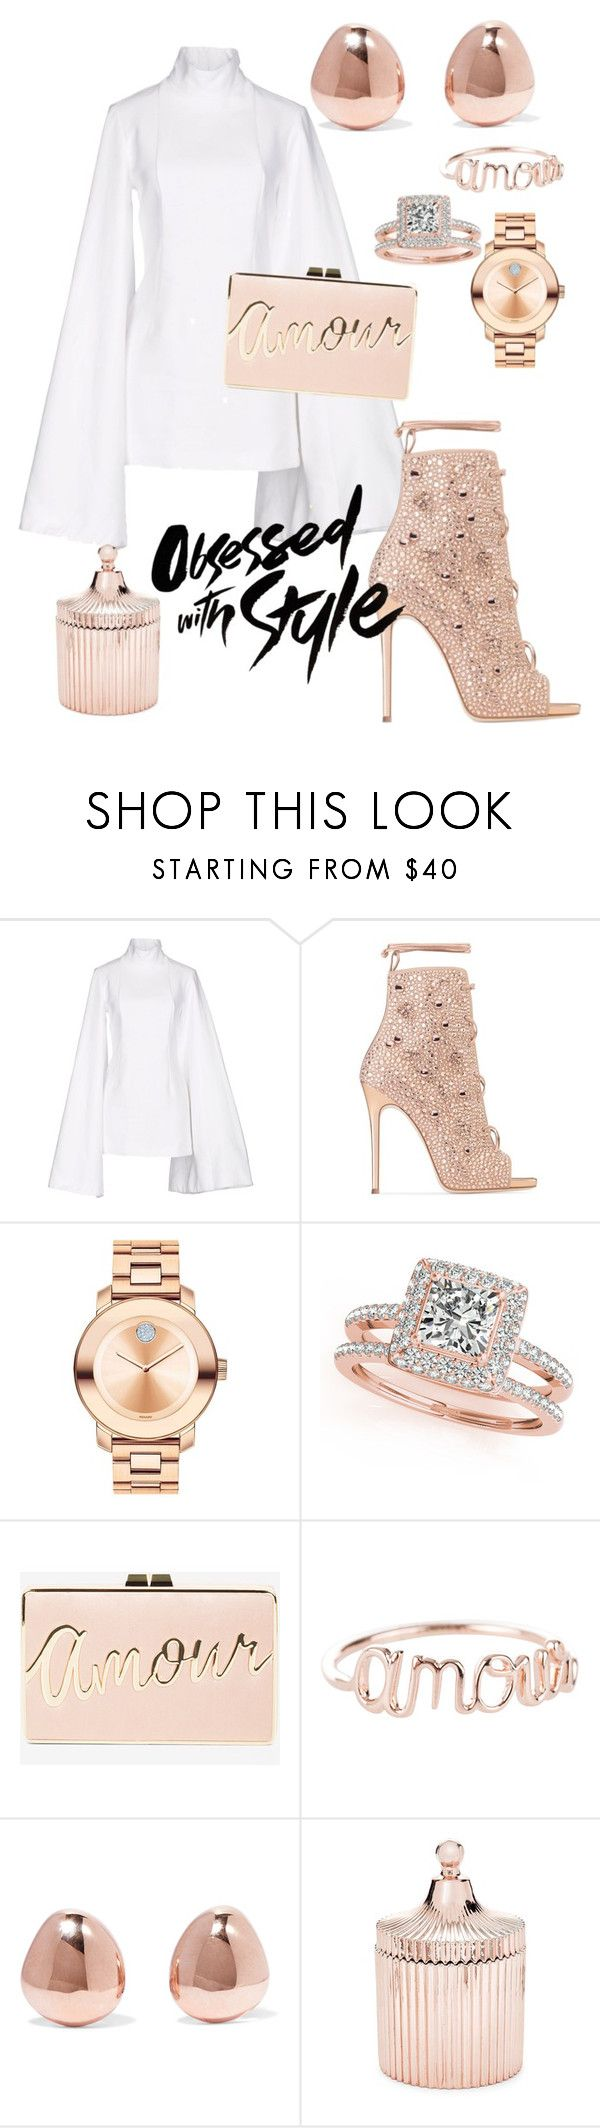 """""""Untitled #47"""" by neeneelondondesignz ❤ liked on Polyvore featuring Jacquemus, Giuseppe Zanotti, Movado, Allurez, BCBGMAXAZRIA, Monica Vinader and Saks Fifth Avenue"""